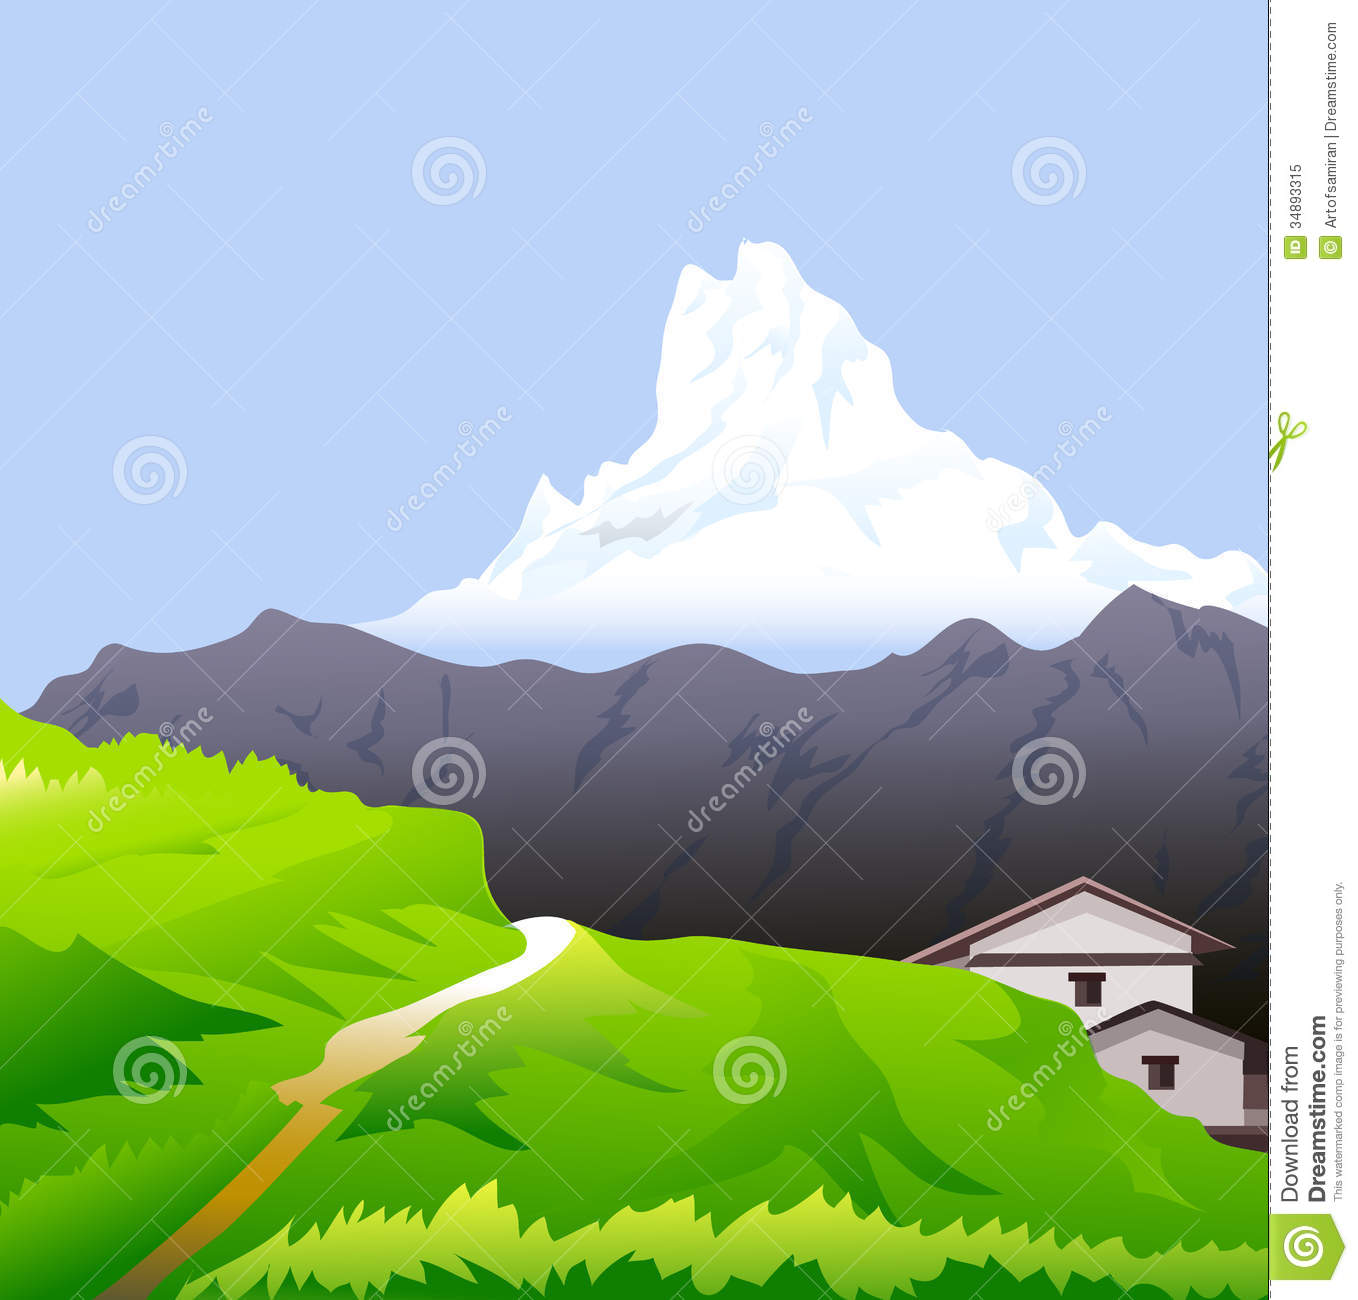 Himalaya clipart #10, Download drawings